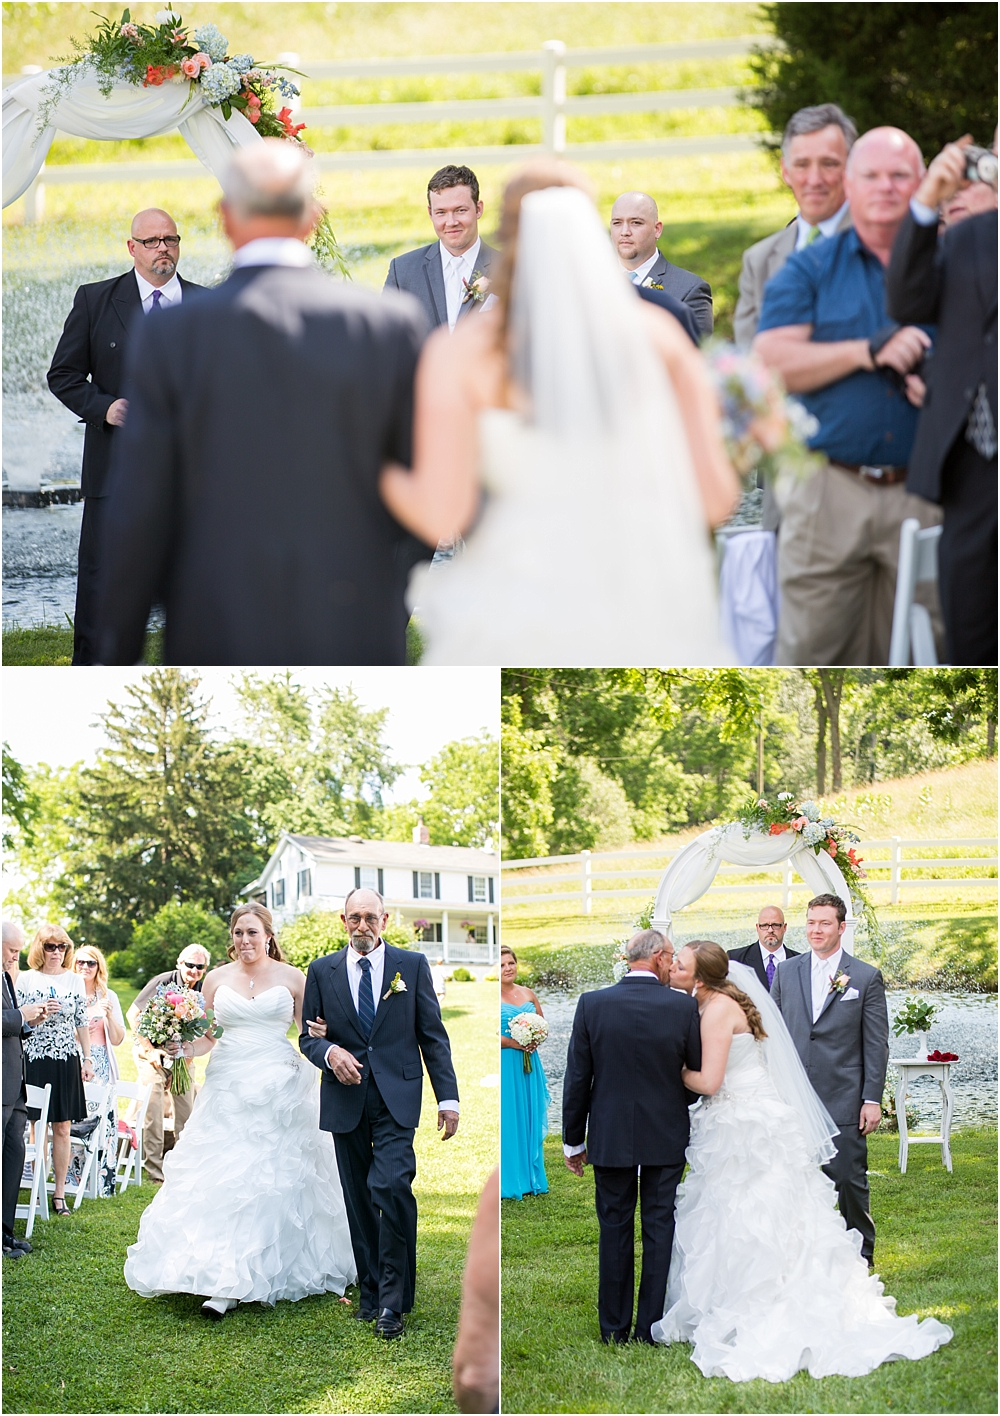 randolph wedding parkton private residence tent wedding living radiant photography photos_0035.jpg